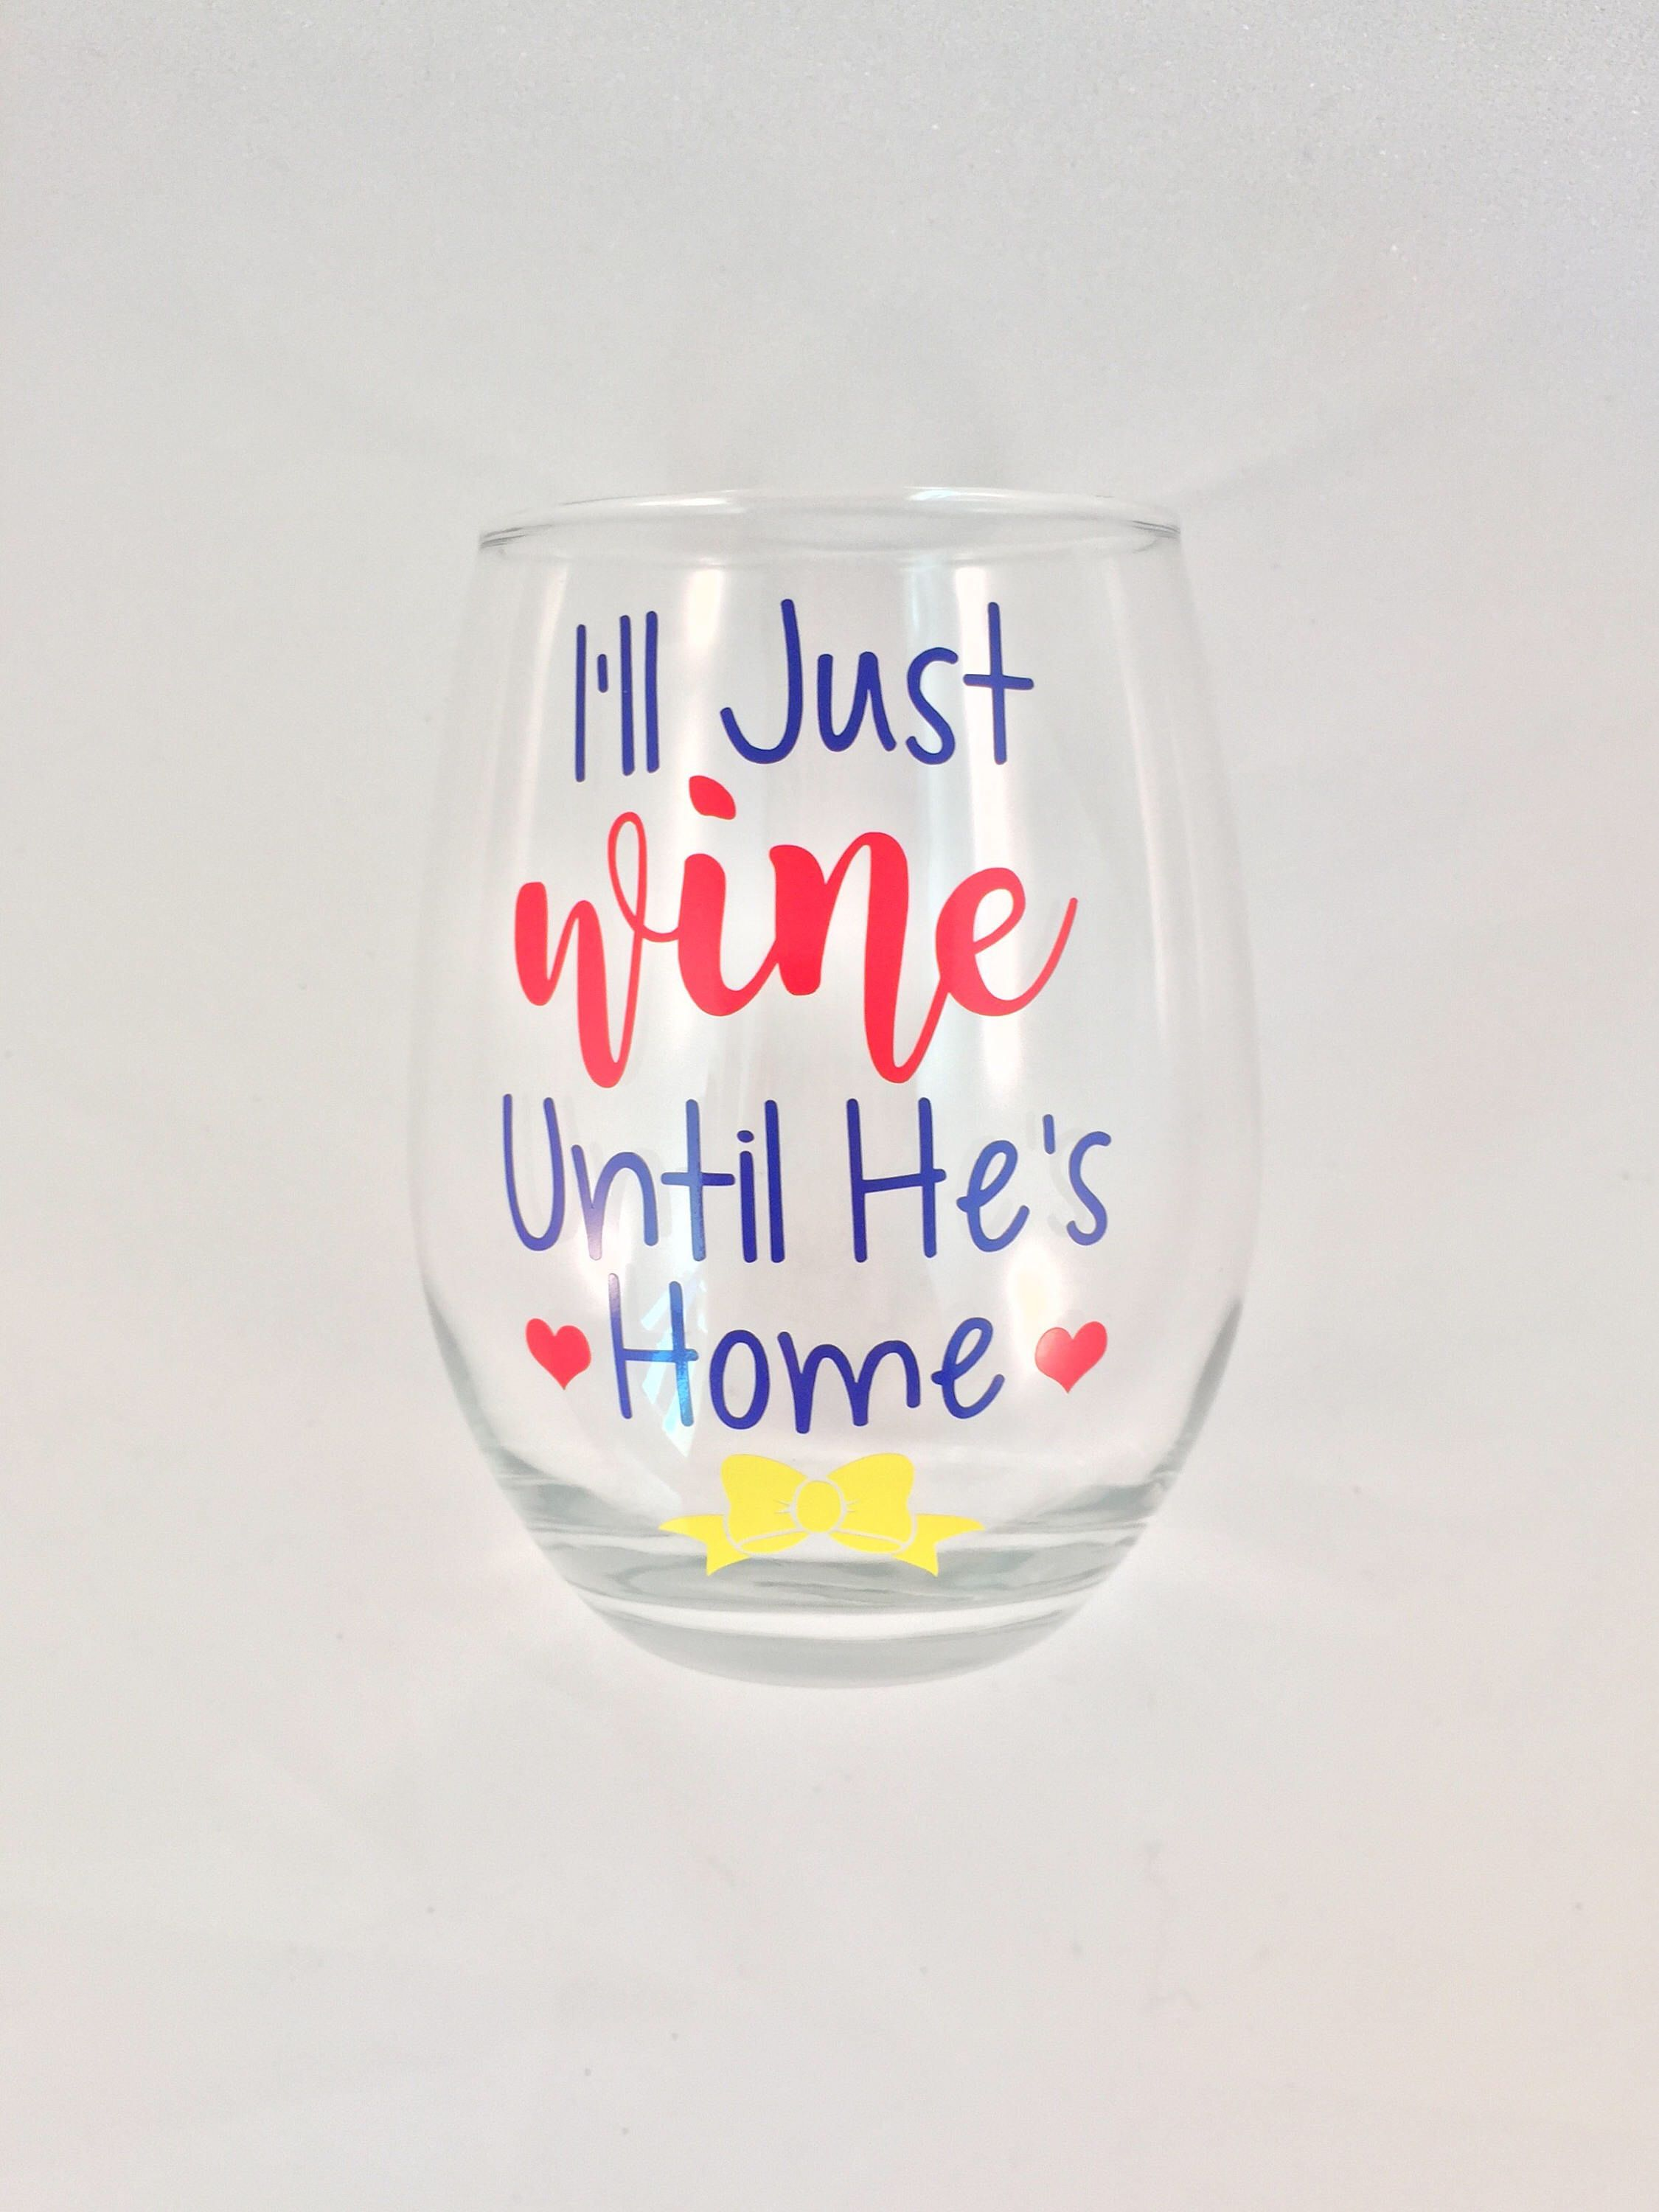 Pin by Breanne Jordan on glasses   Military wife, Military